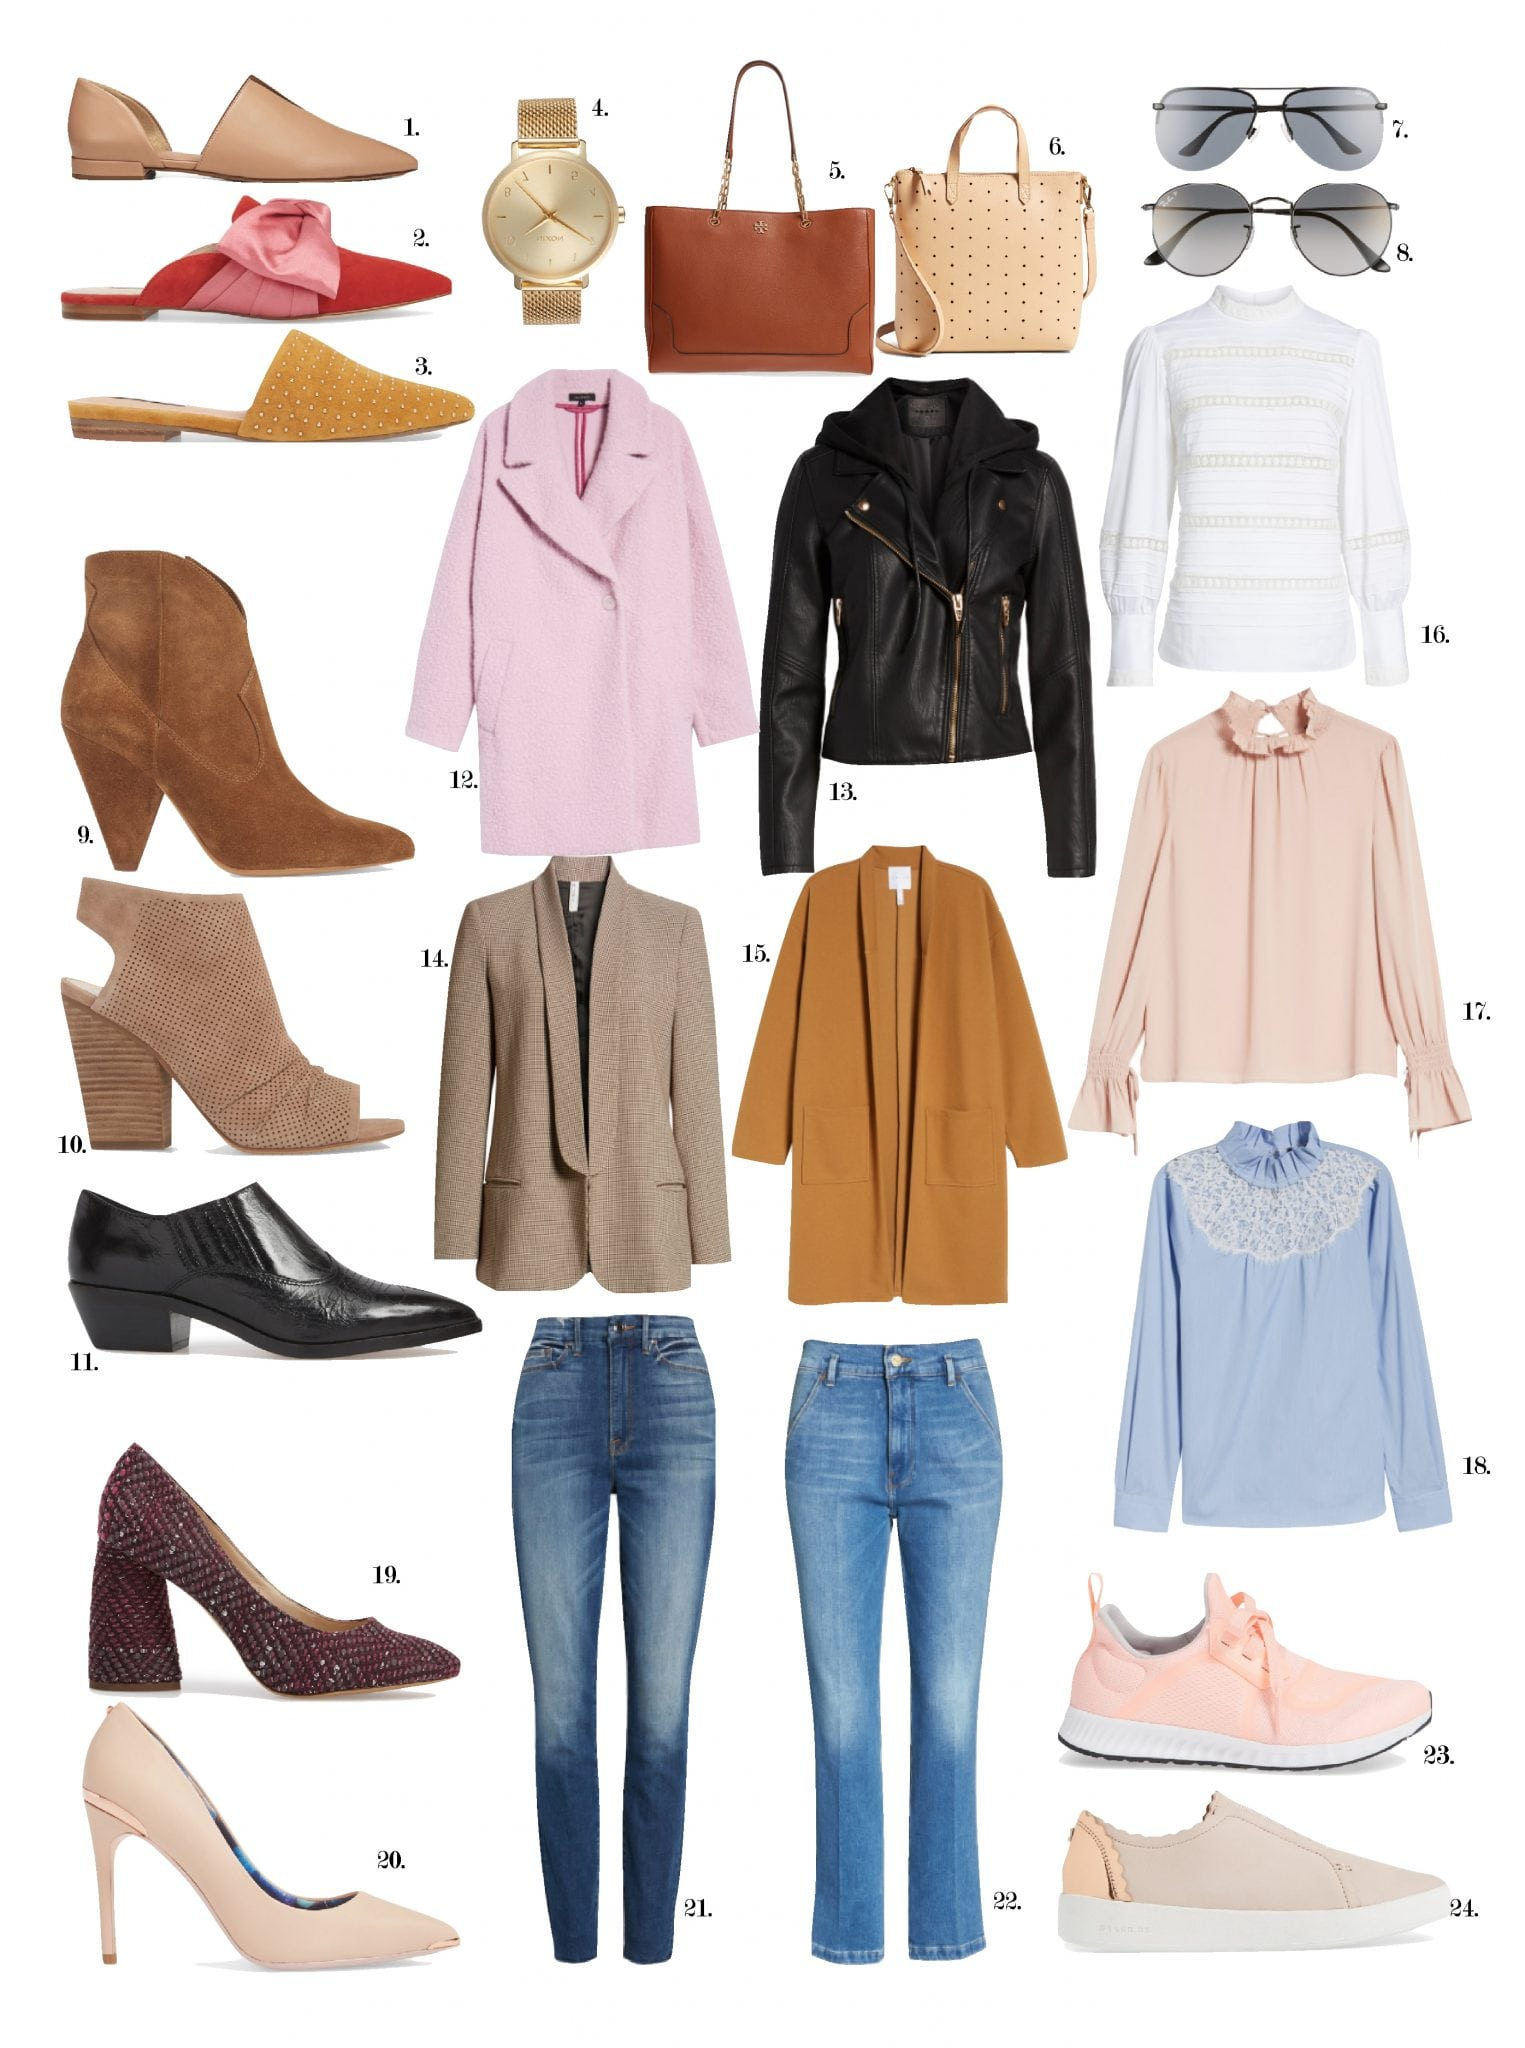 3ff3b0cba8 Nordstrom Anniversary Sale 2018 Top Picks - Elle Apparel by Leanne ...